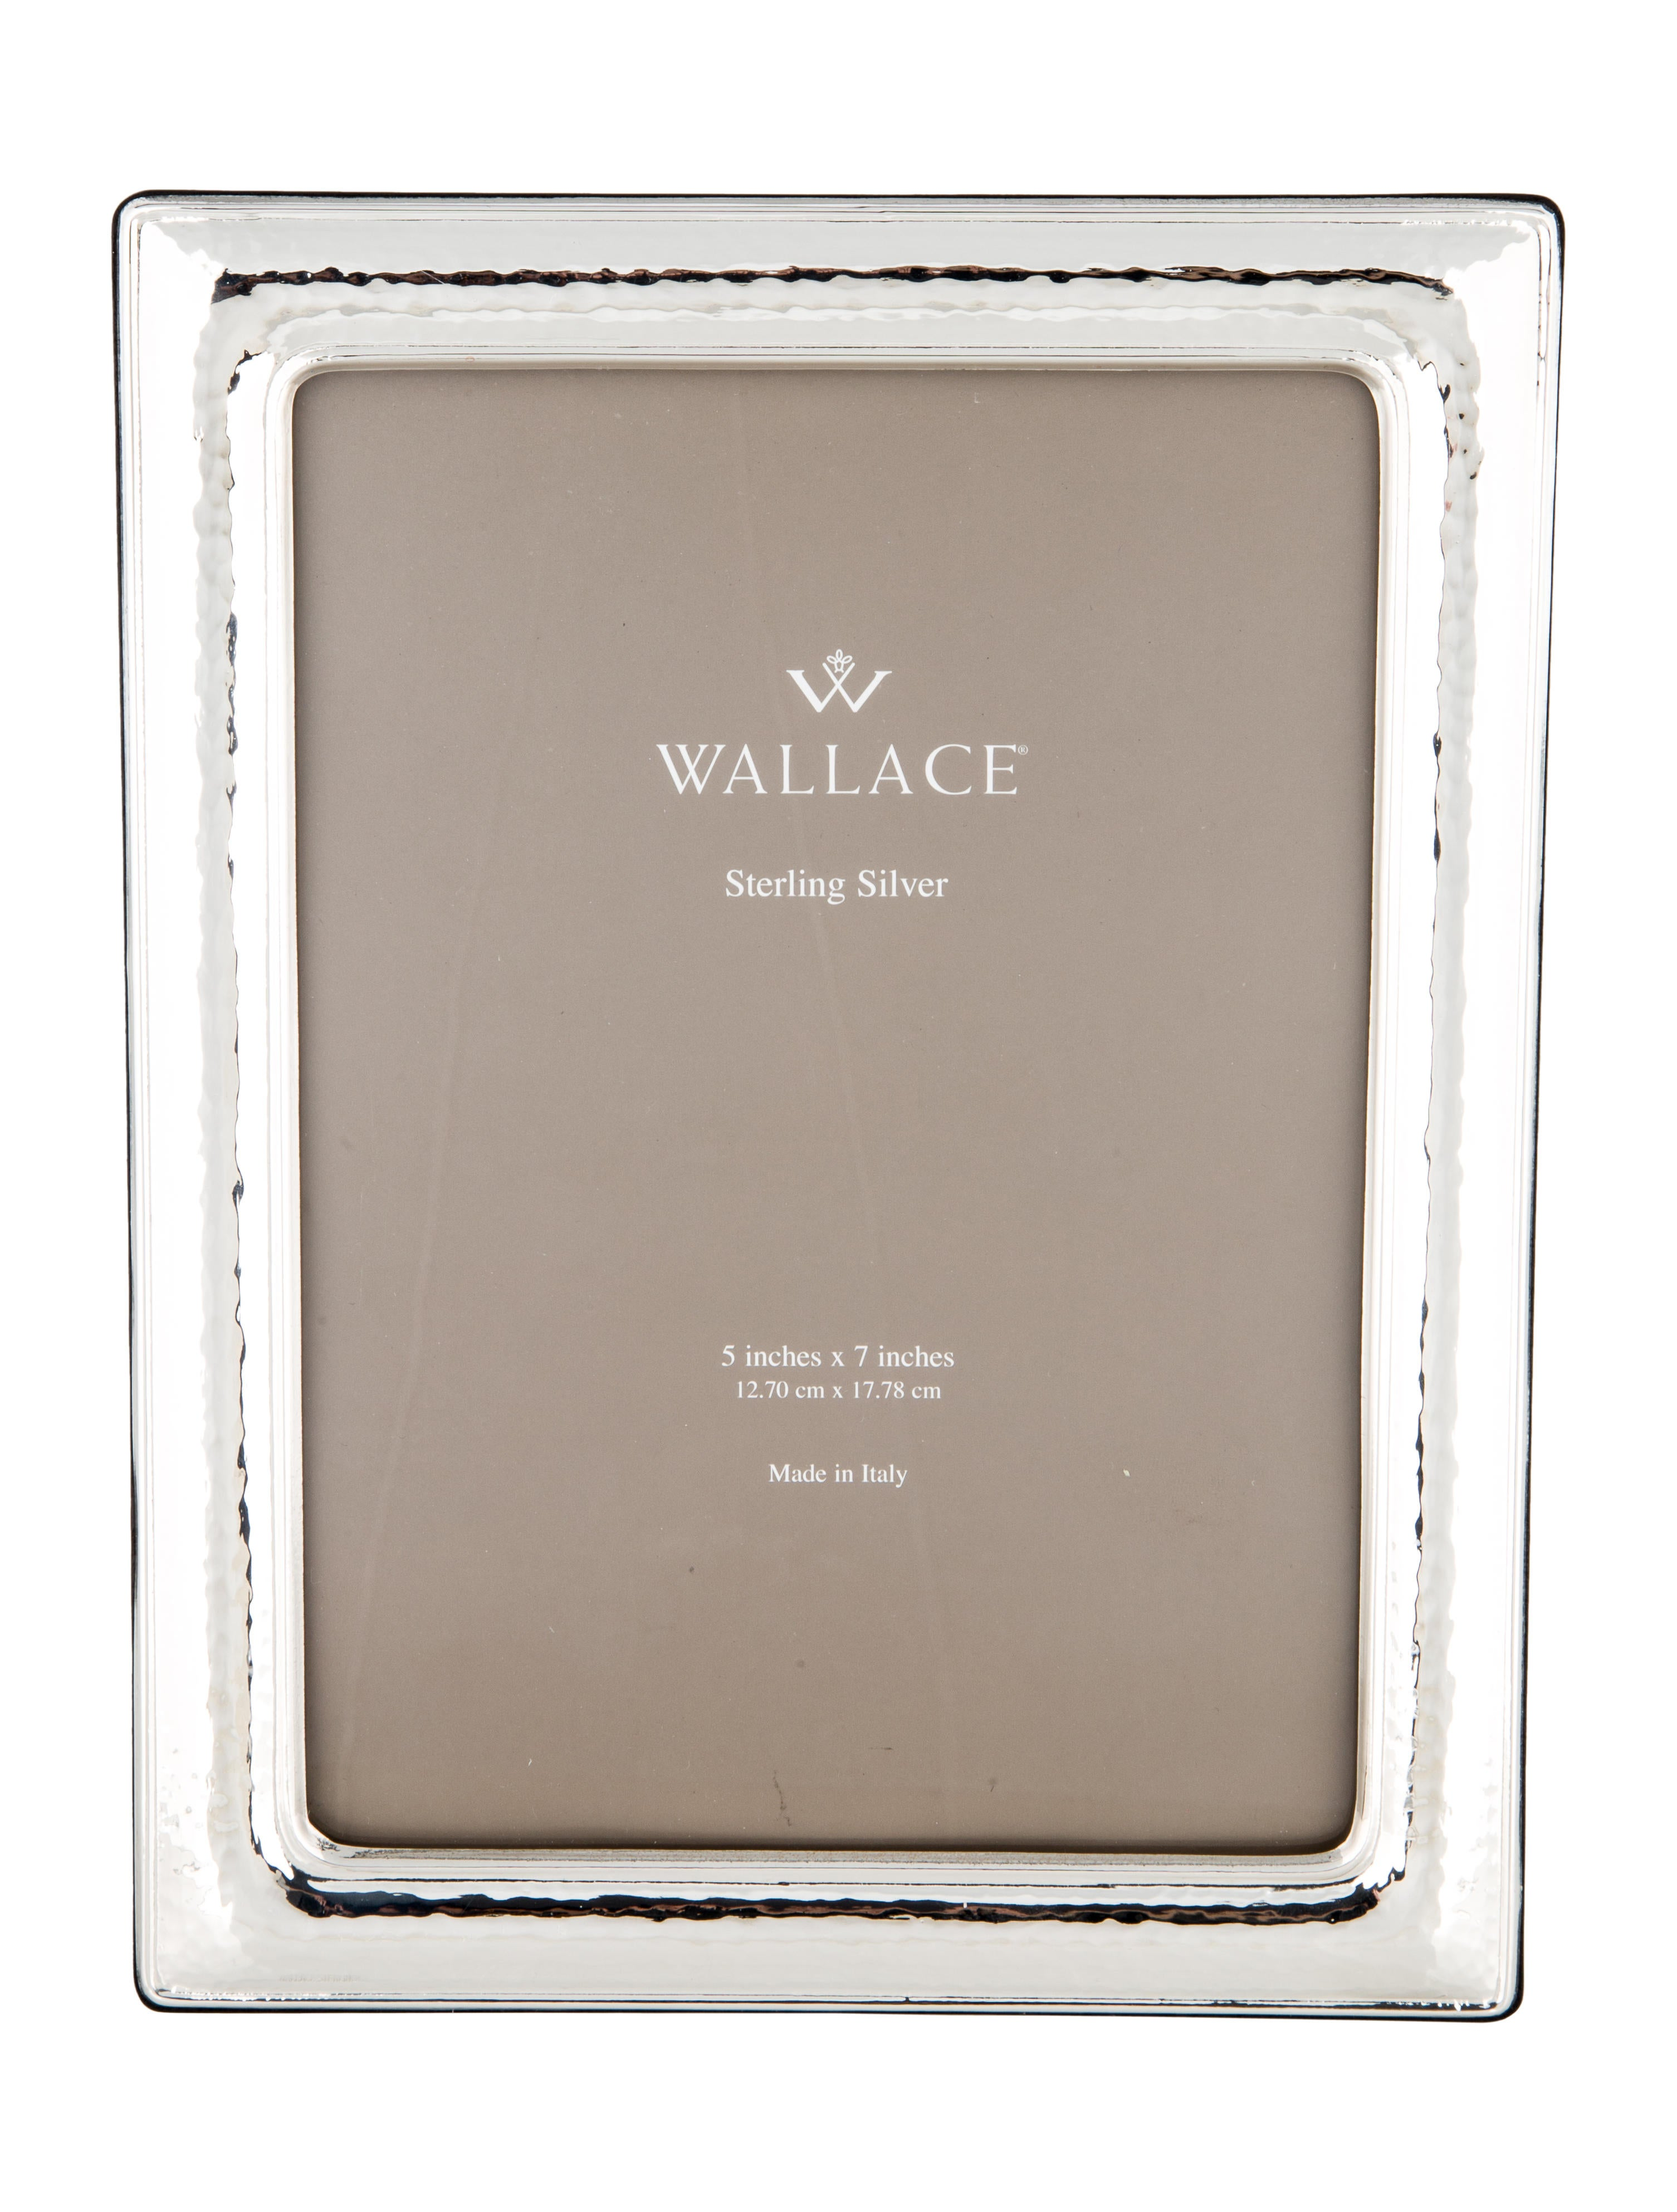 Wallace Sterling Silver Frame - Decor And Accessories - WALCE20050 ...